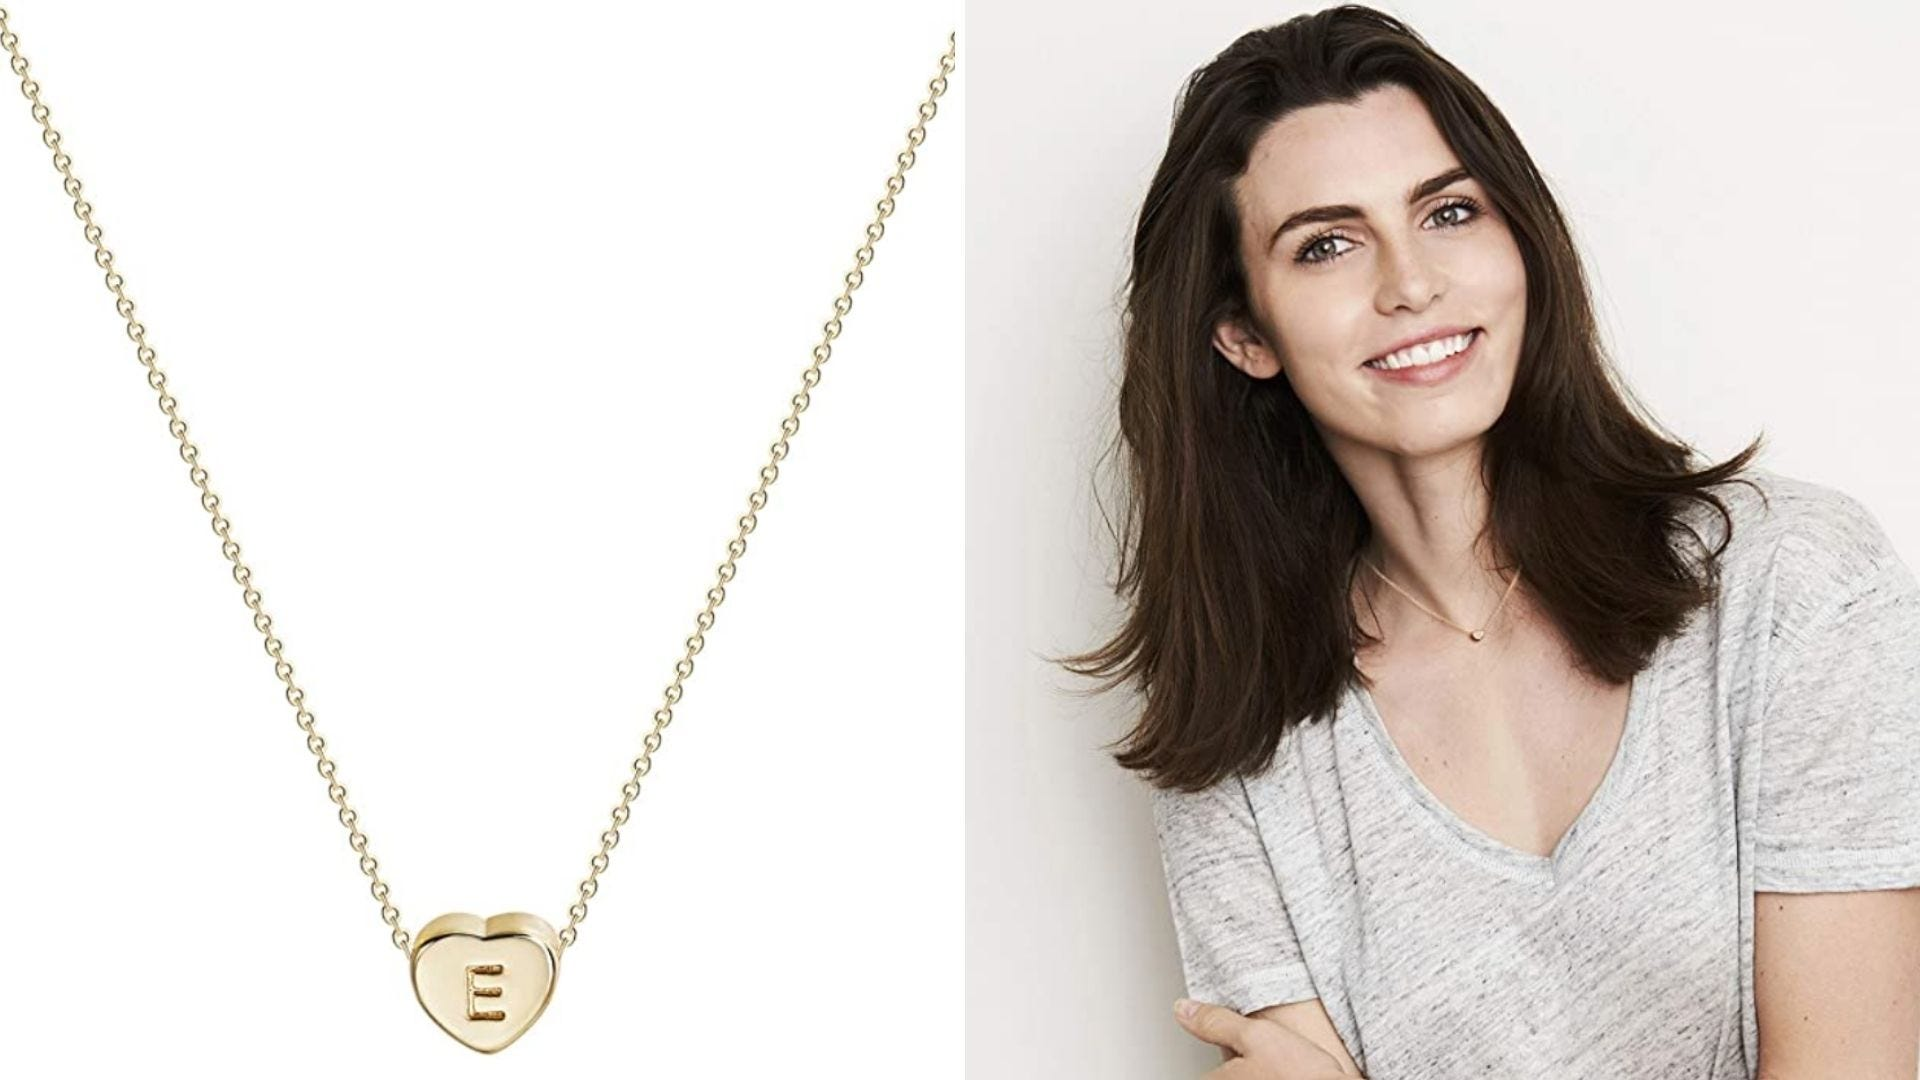 A gold heart necklace. A woman wear the necklace and smiles at the camera.